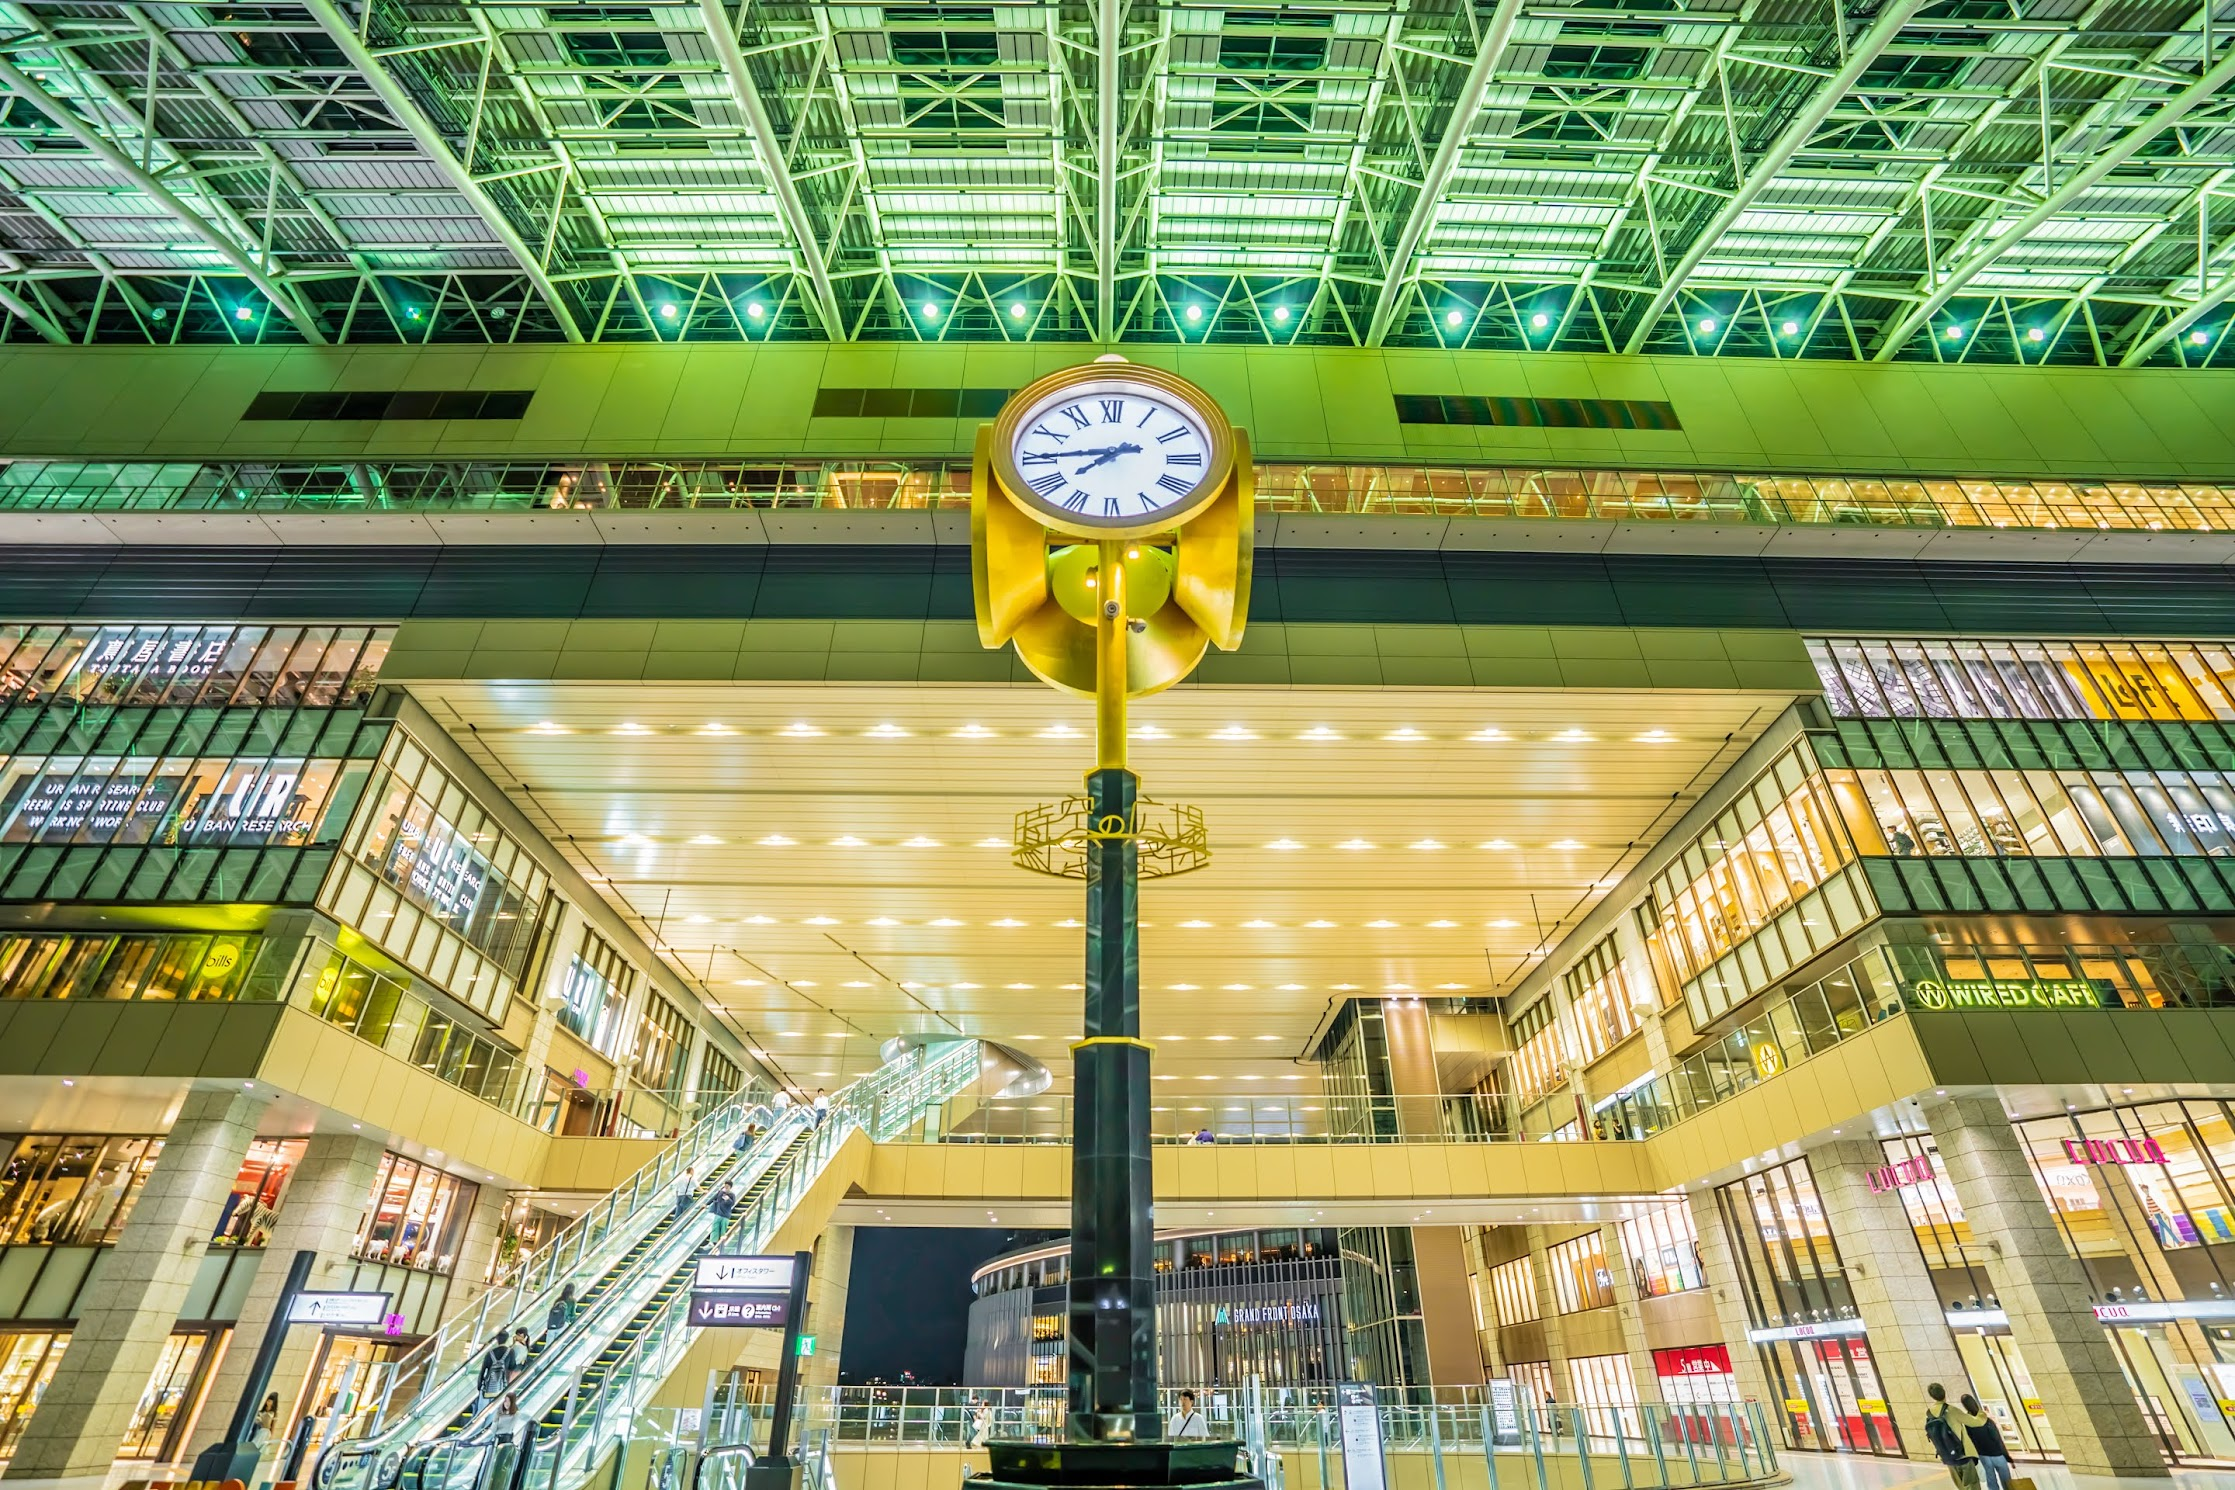 Osaka station Toki-no-hiroba Plaza4